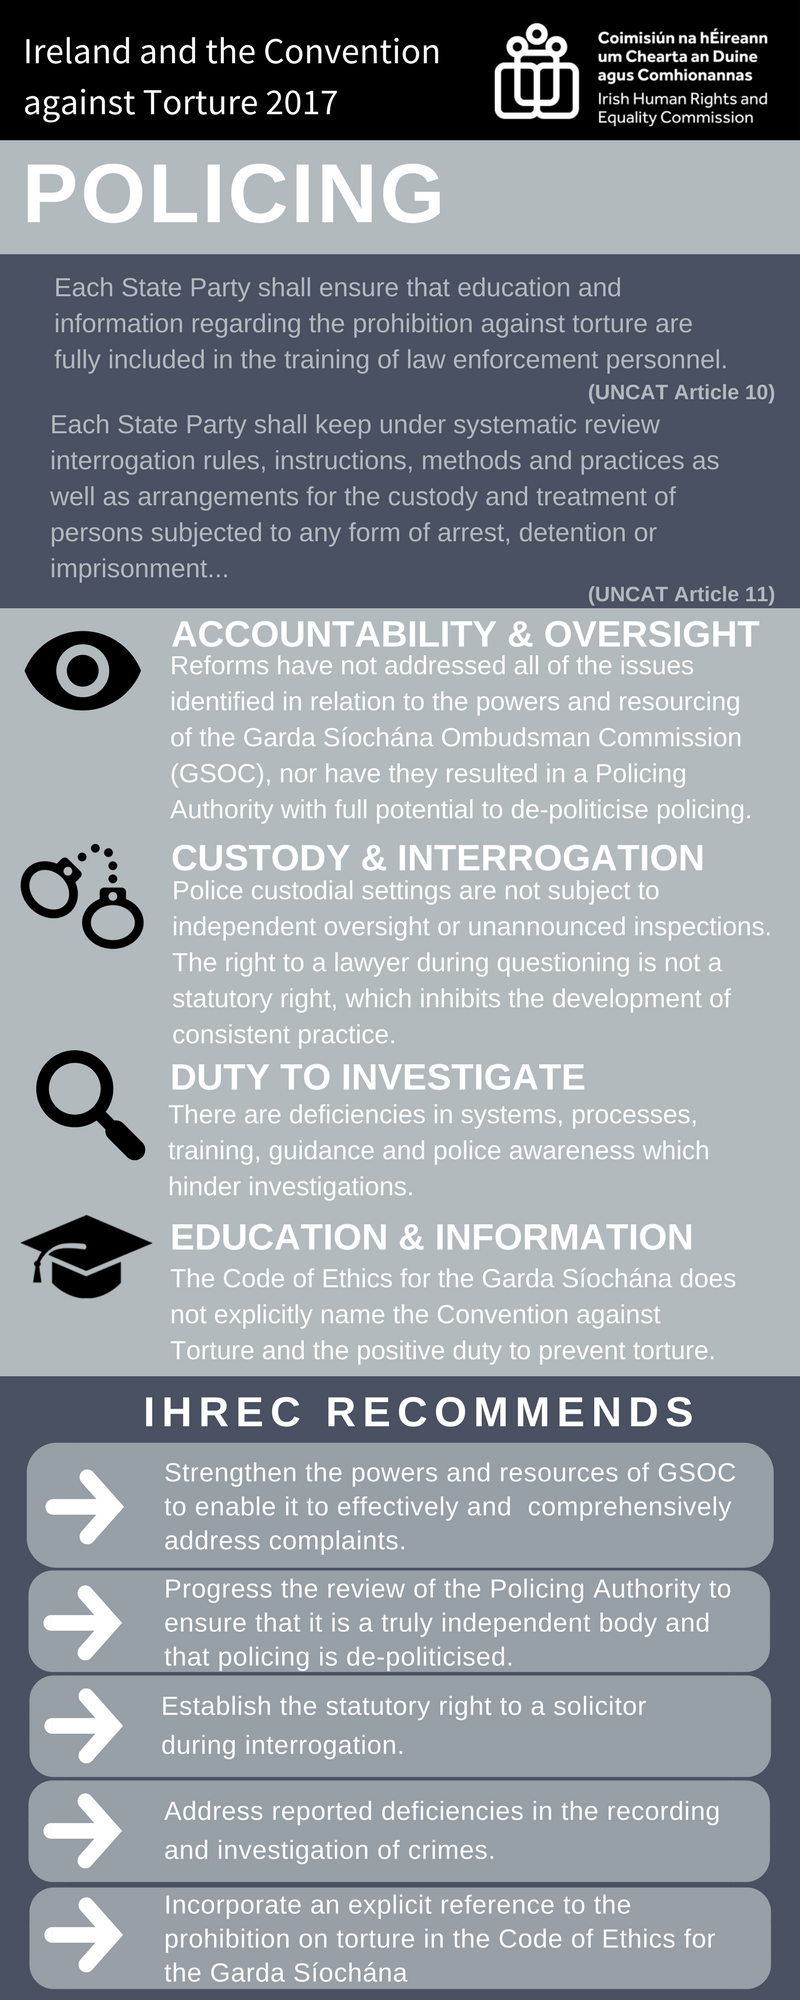 Policing accountability, oversight & the rights of accused are raised in our #UNCAT #TortureCtte report. Read more https://t.co/mlpDYcbQ31 https://t.co/S9UDzC4b8P